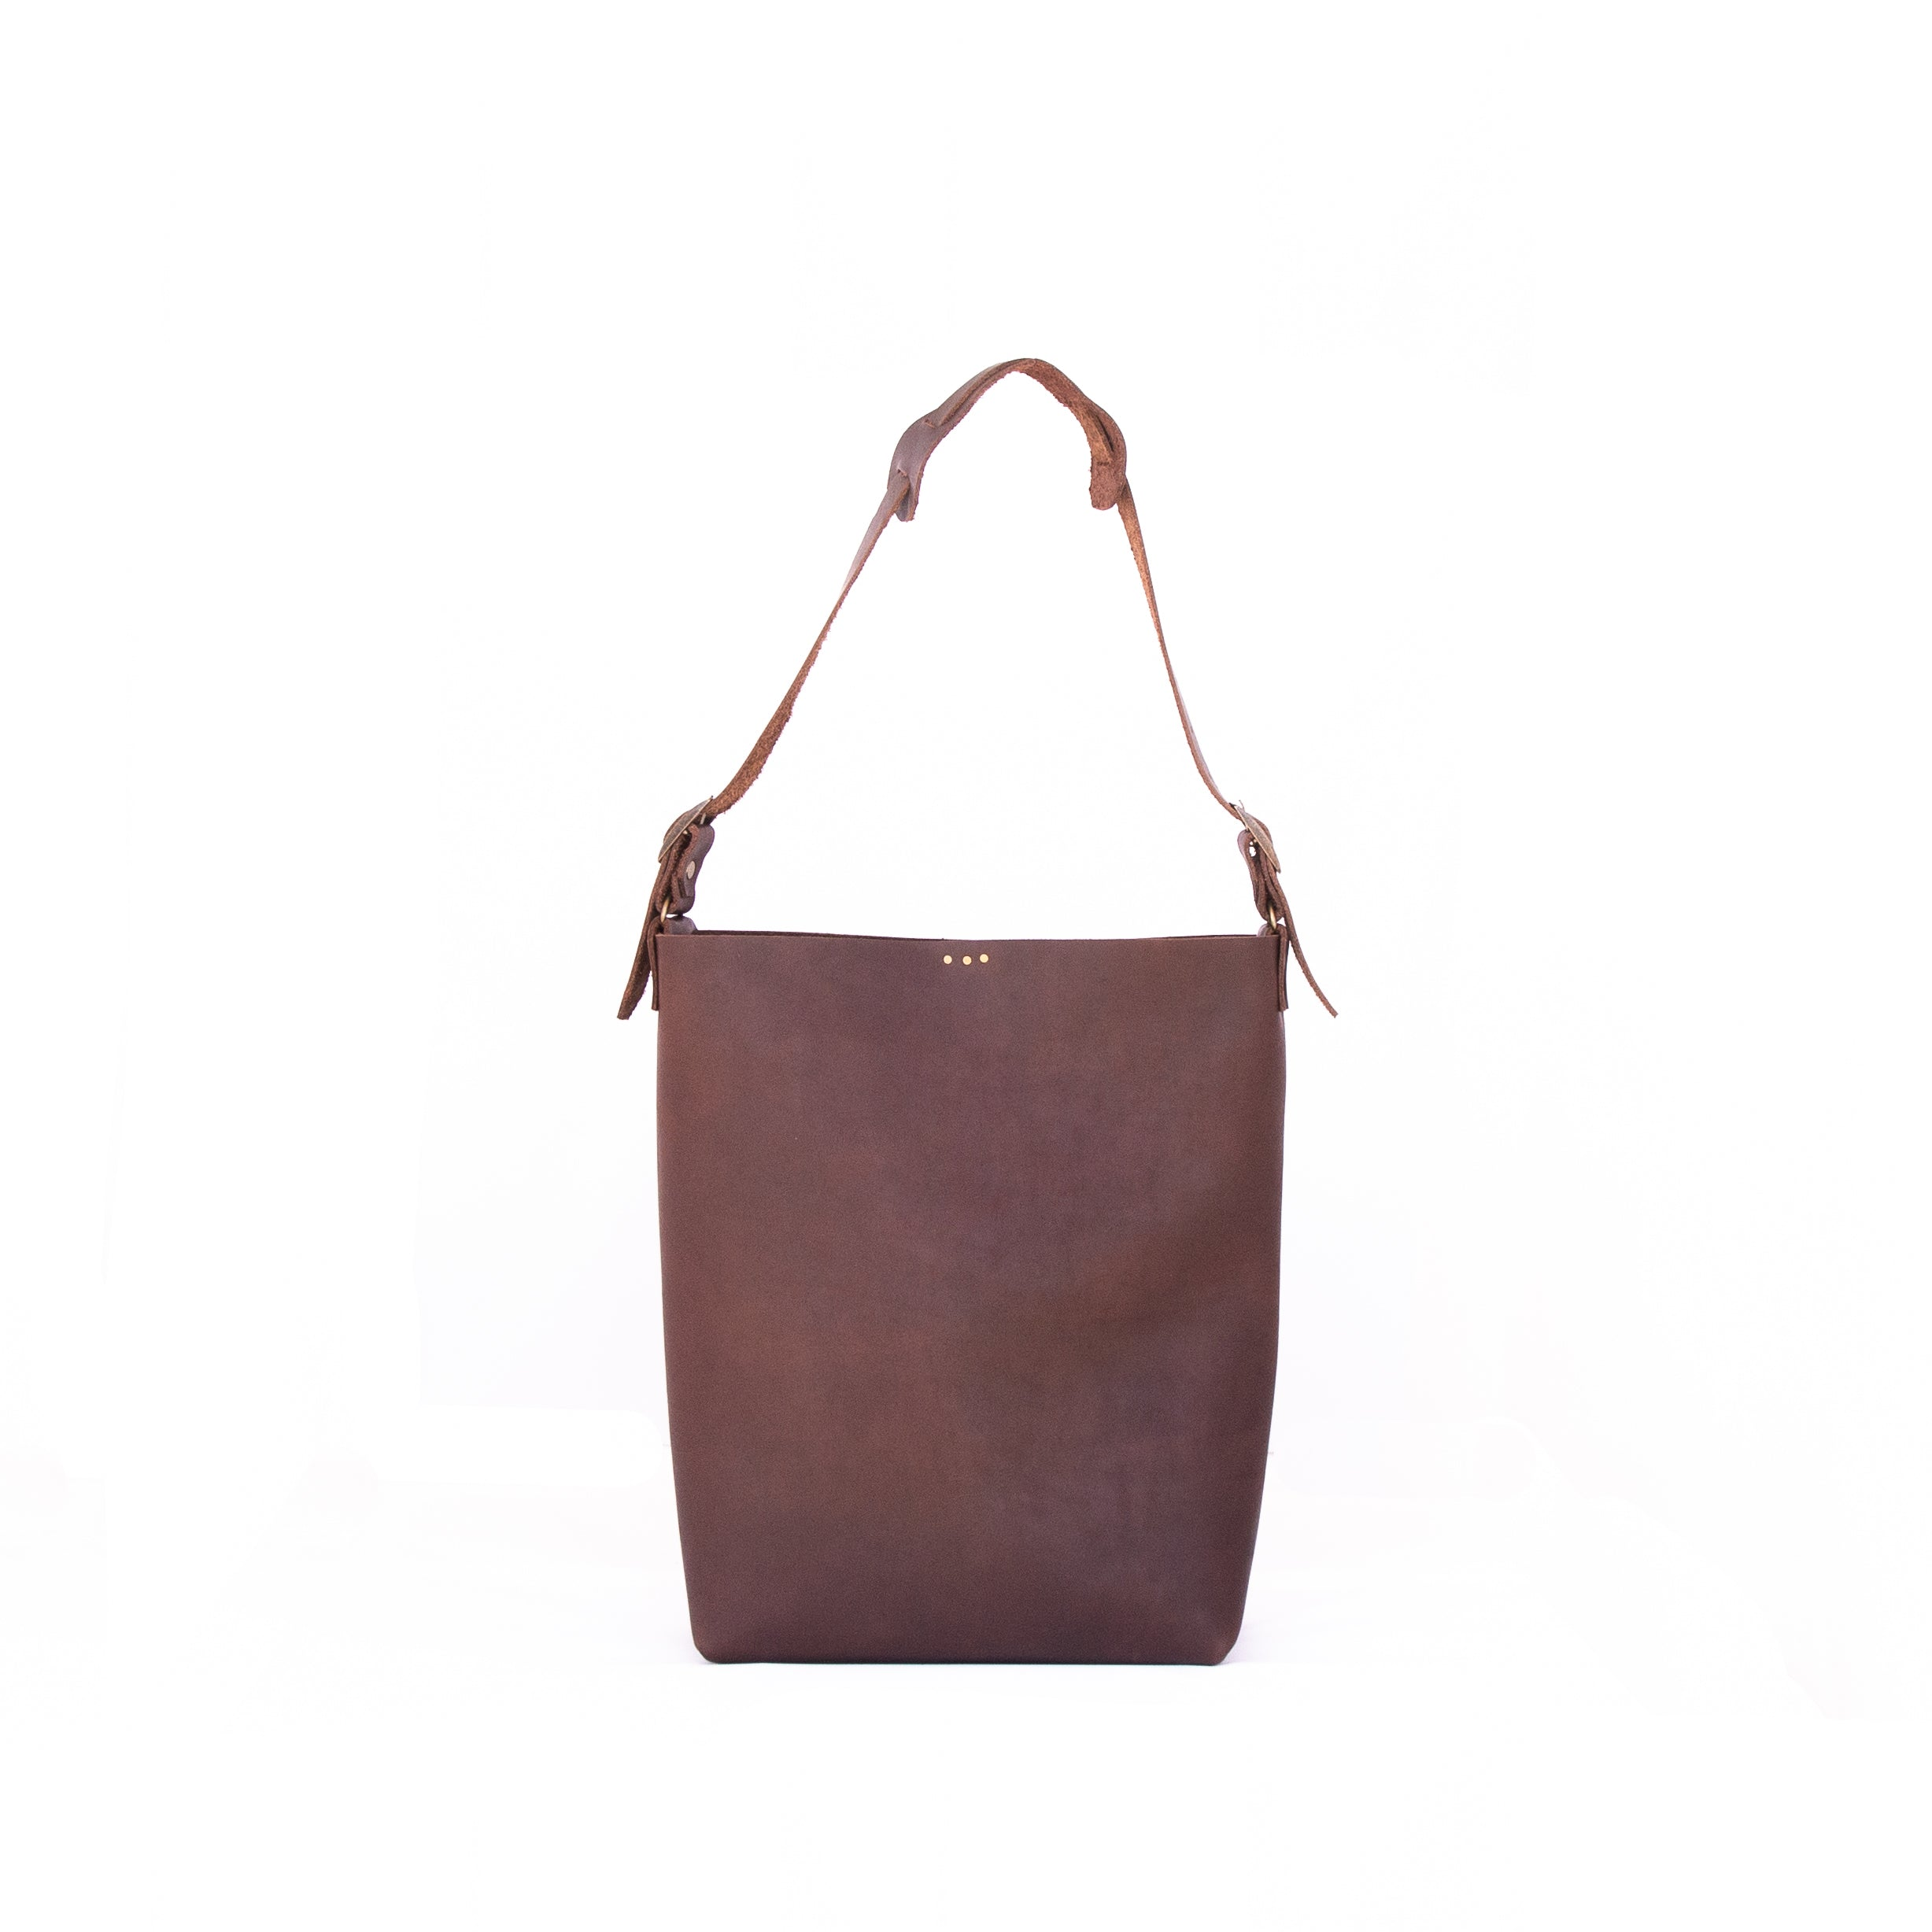 Lady Bag Leather - handcrafted by Market Canvas Leather in Tofino, BC, Canada